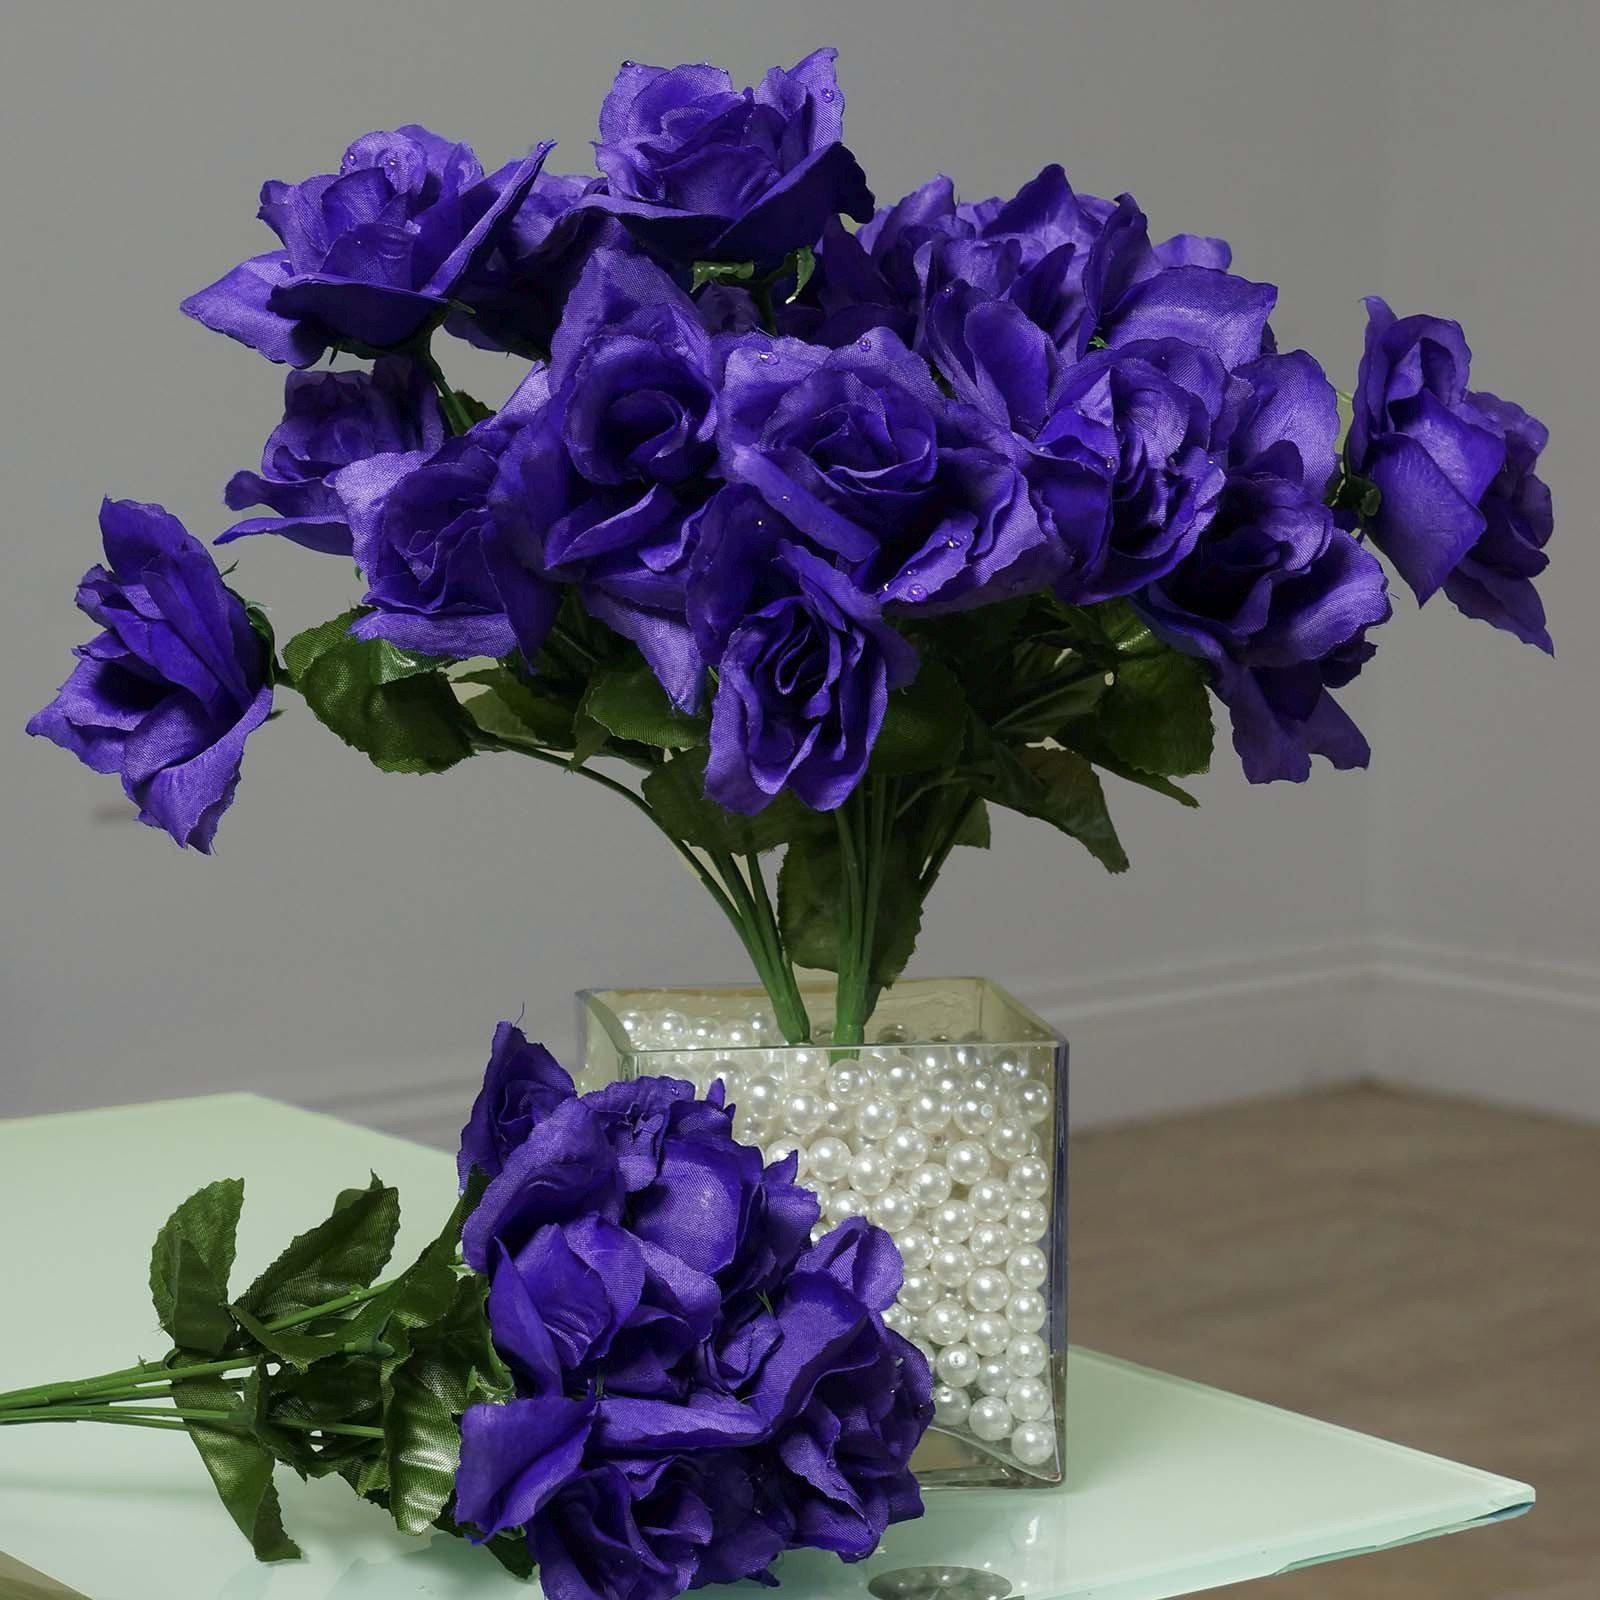 12 Bushes 84 Pcs Purple Artificial Silk Rose Flowers With Green